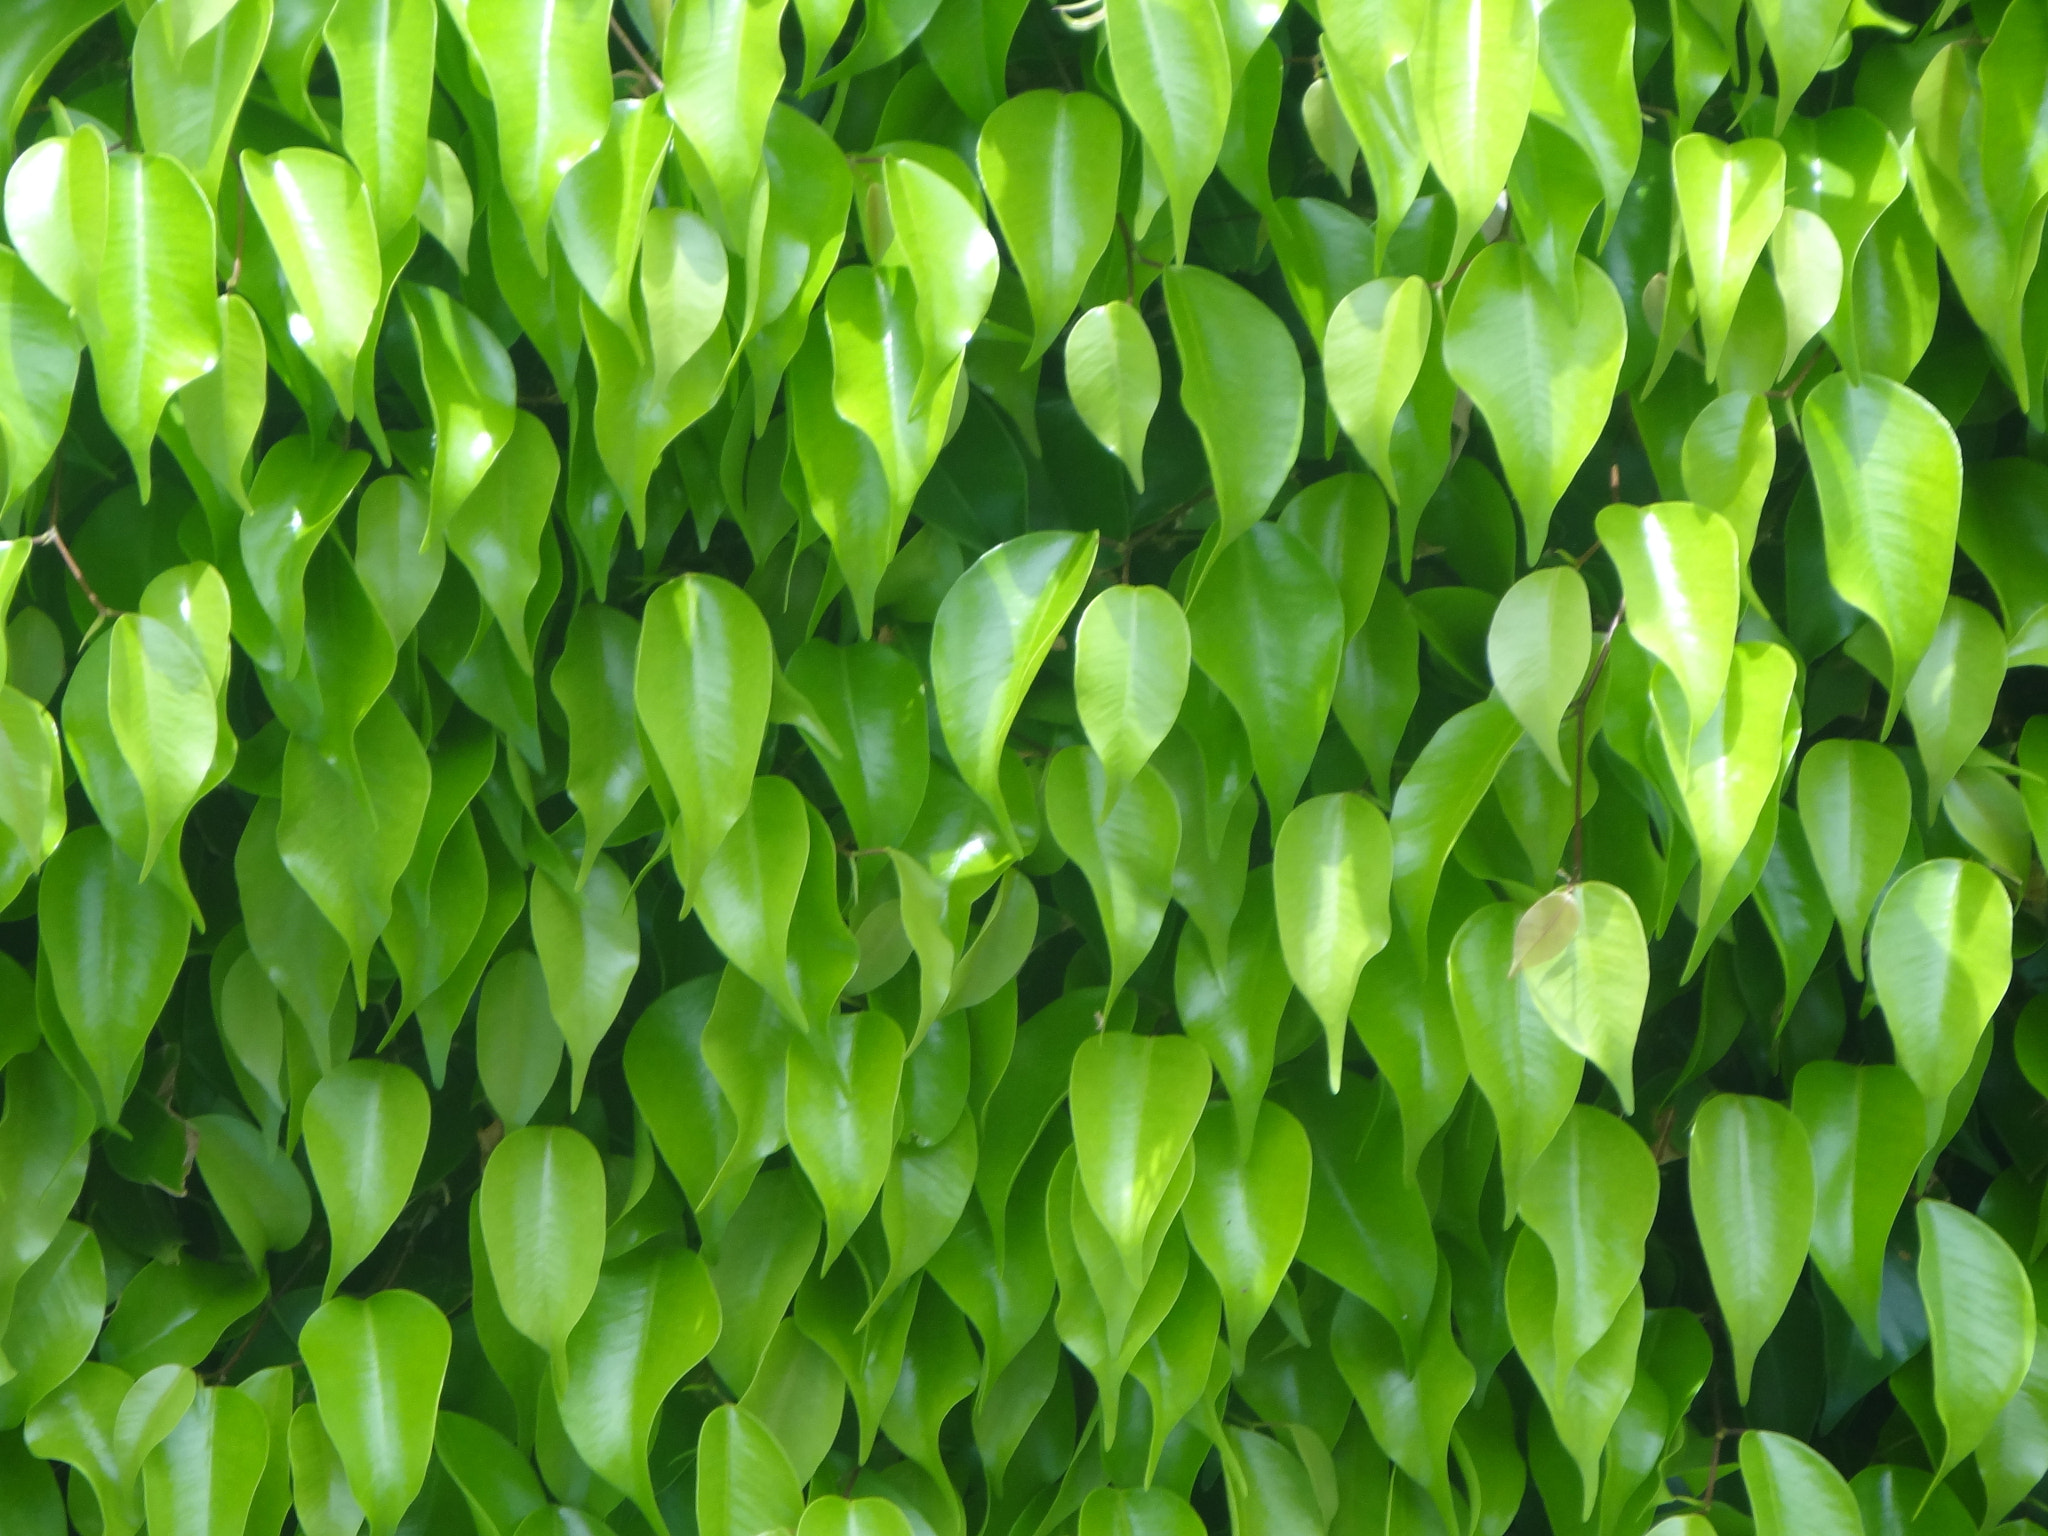 Photograph Green leaves by Jessenine Reyes on 500px